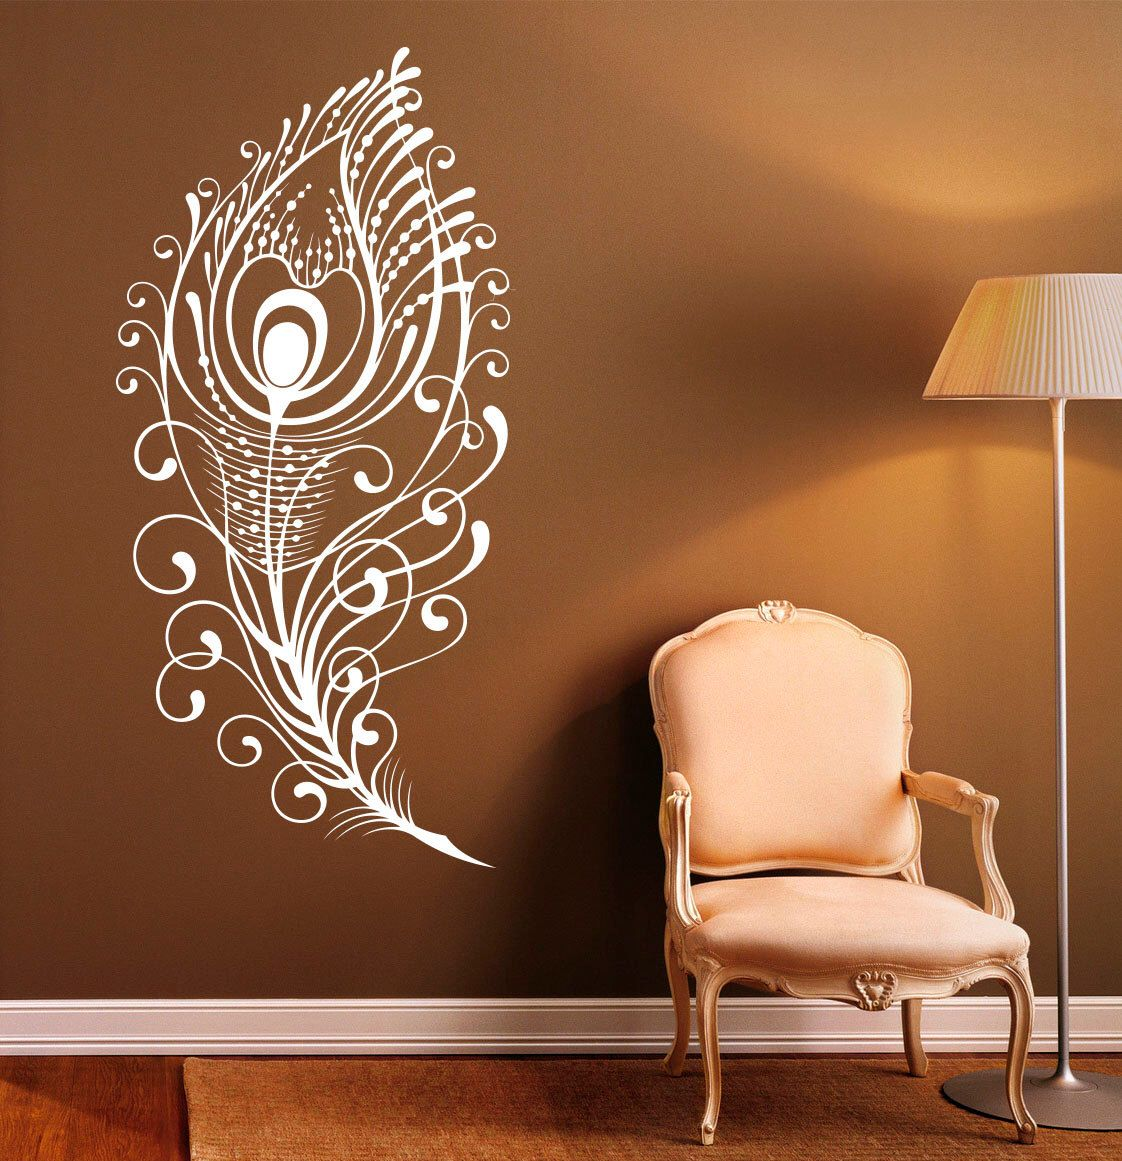 Pea Feather Wall Decal Vinyl Stickers Bird Plumage